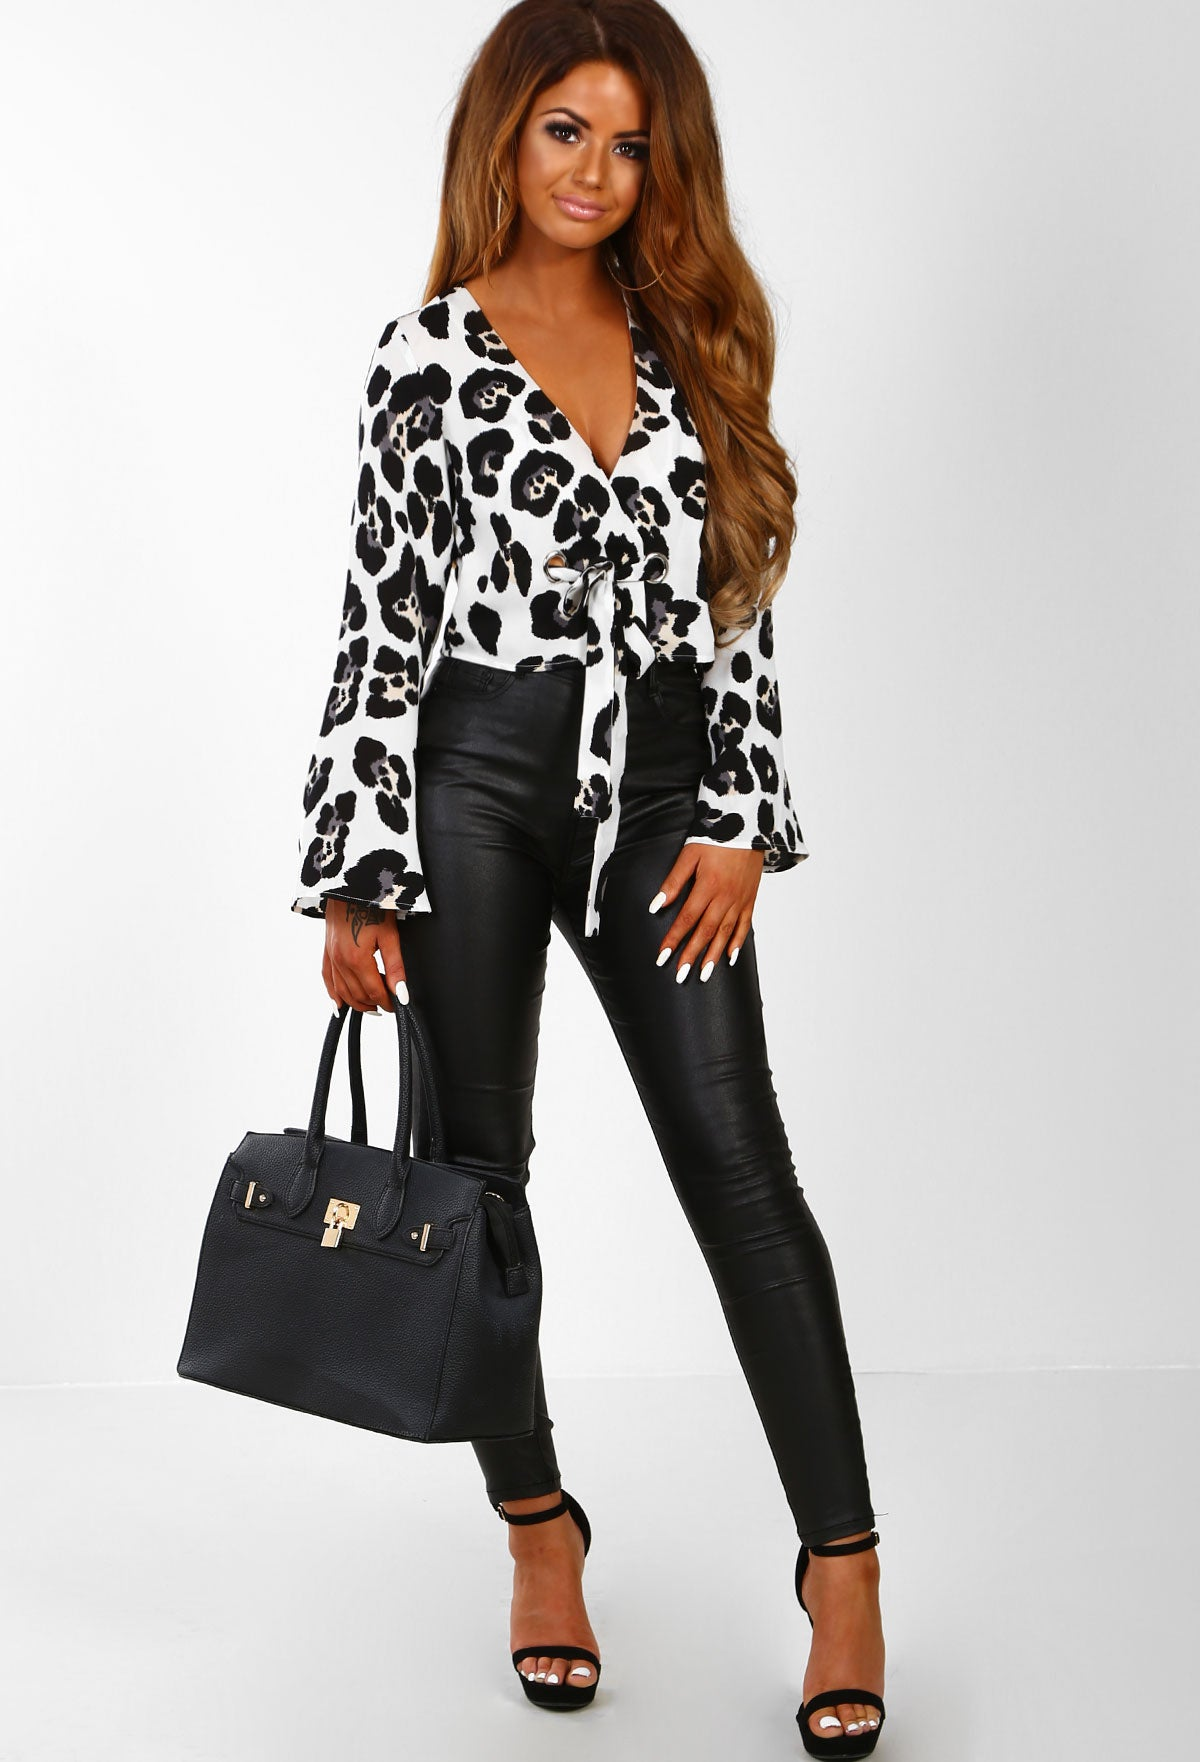 78cad61f2d2 In The Jungle White Leopard Print Tie Front Wrap Crop Top – Pink ...